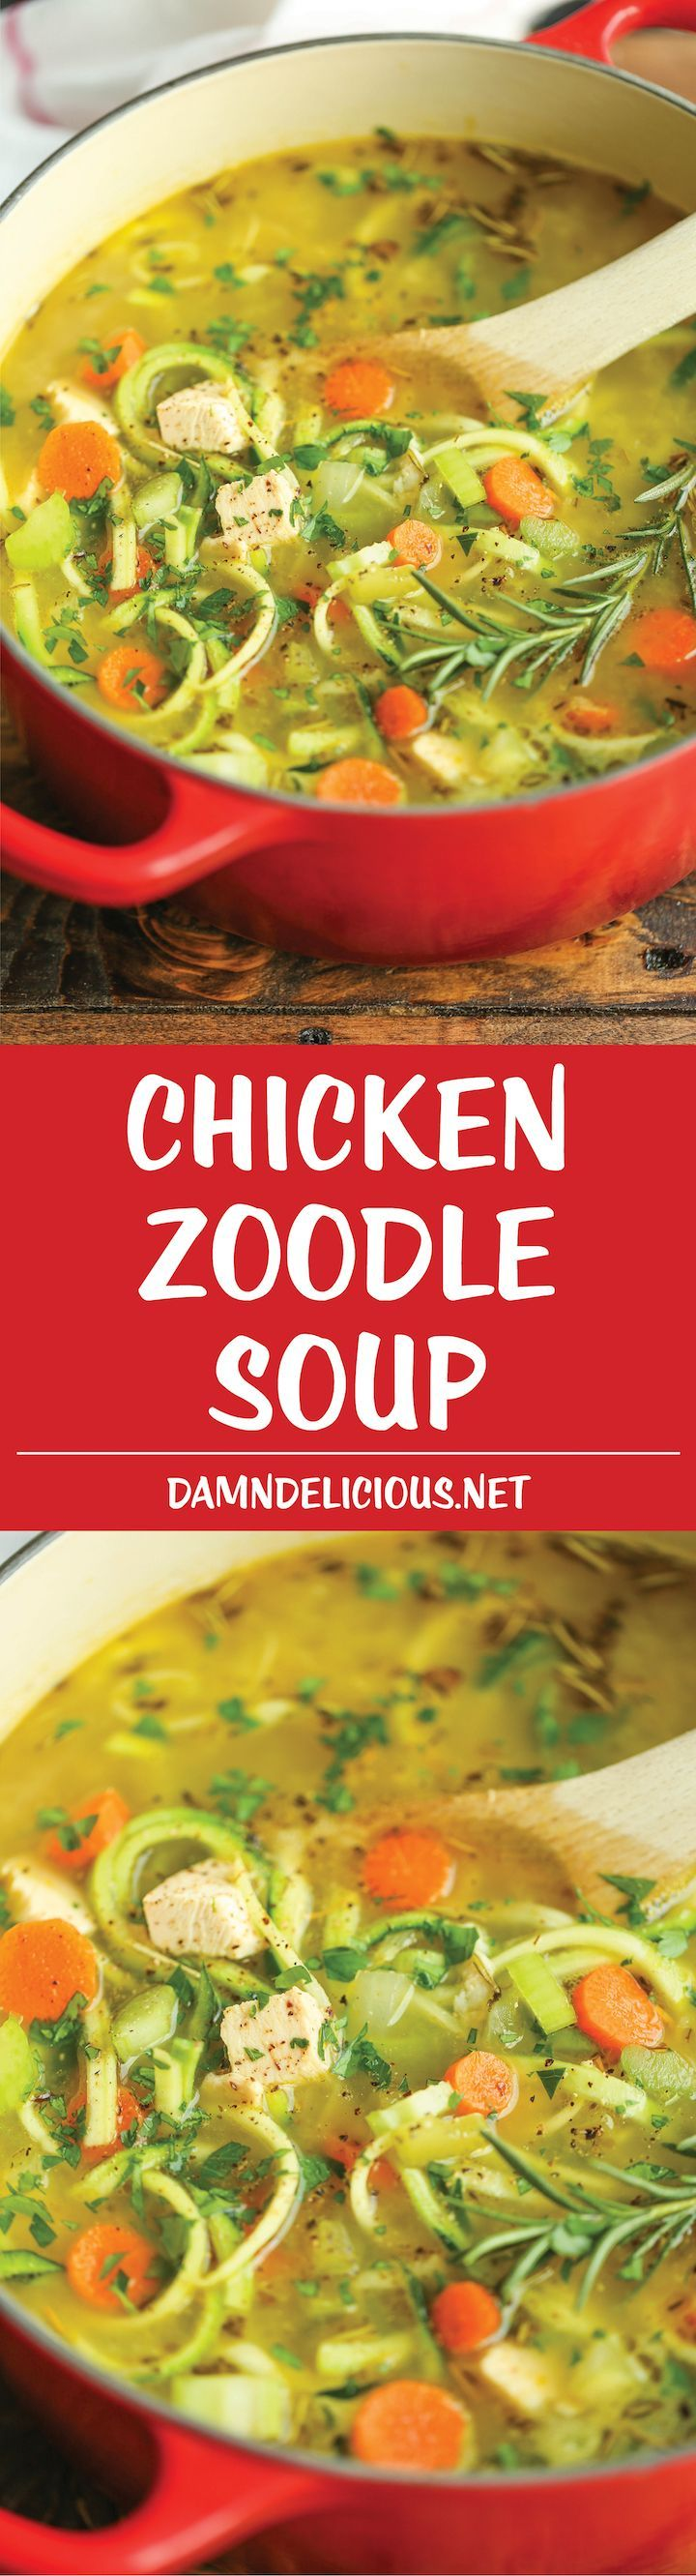 hicken Zoodle Soup